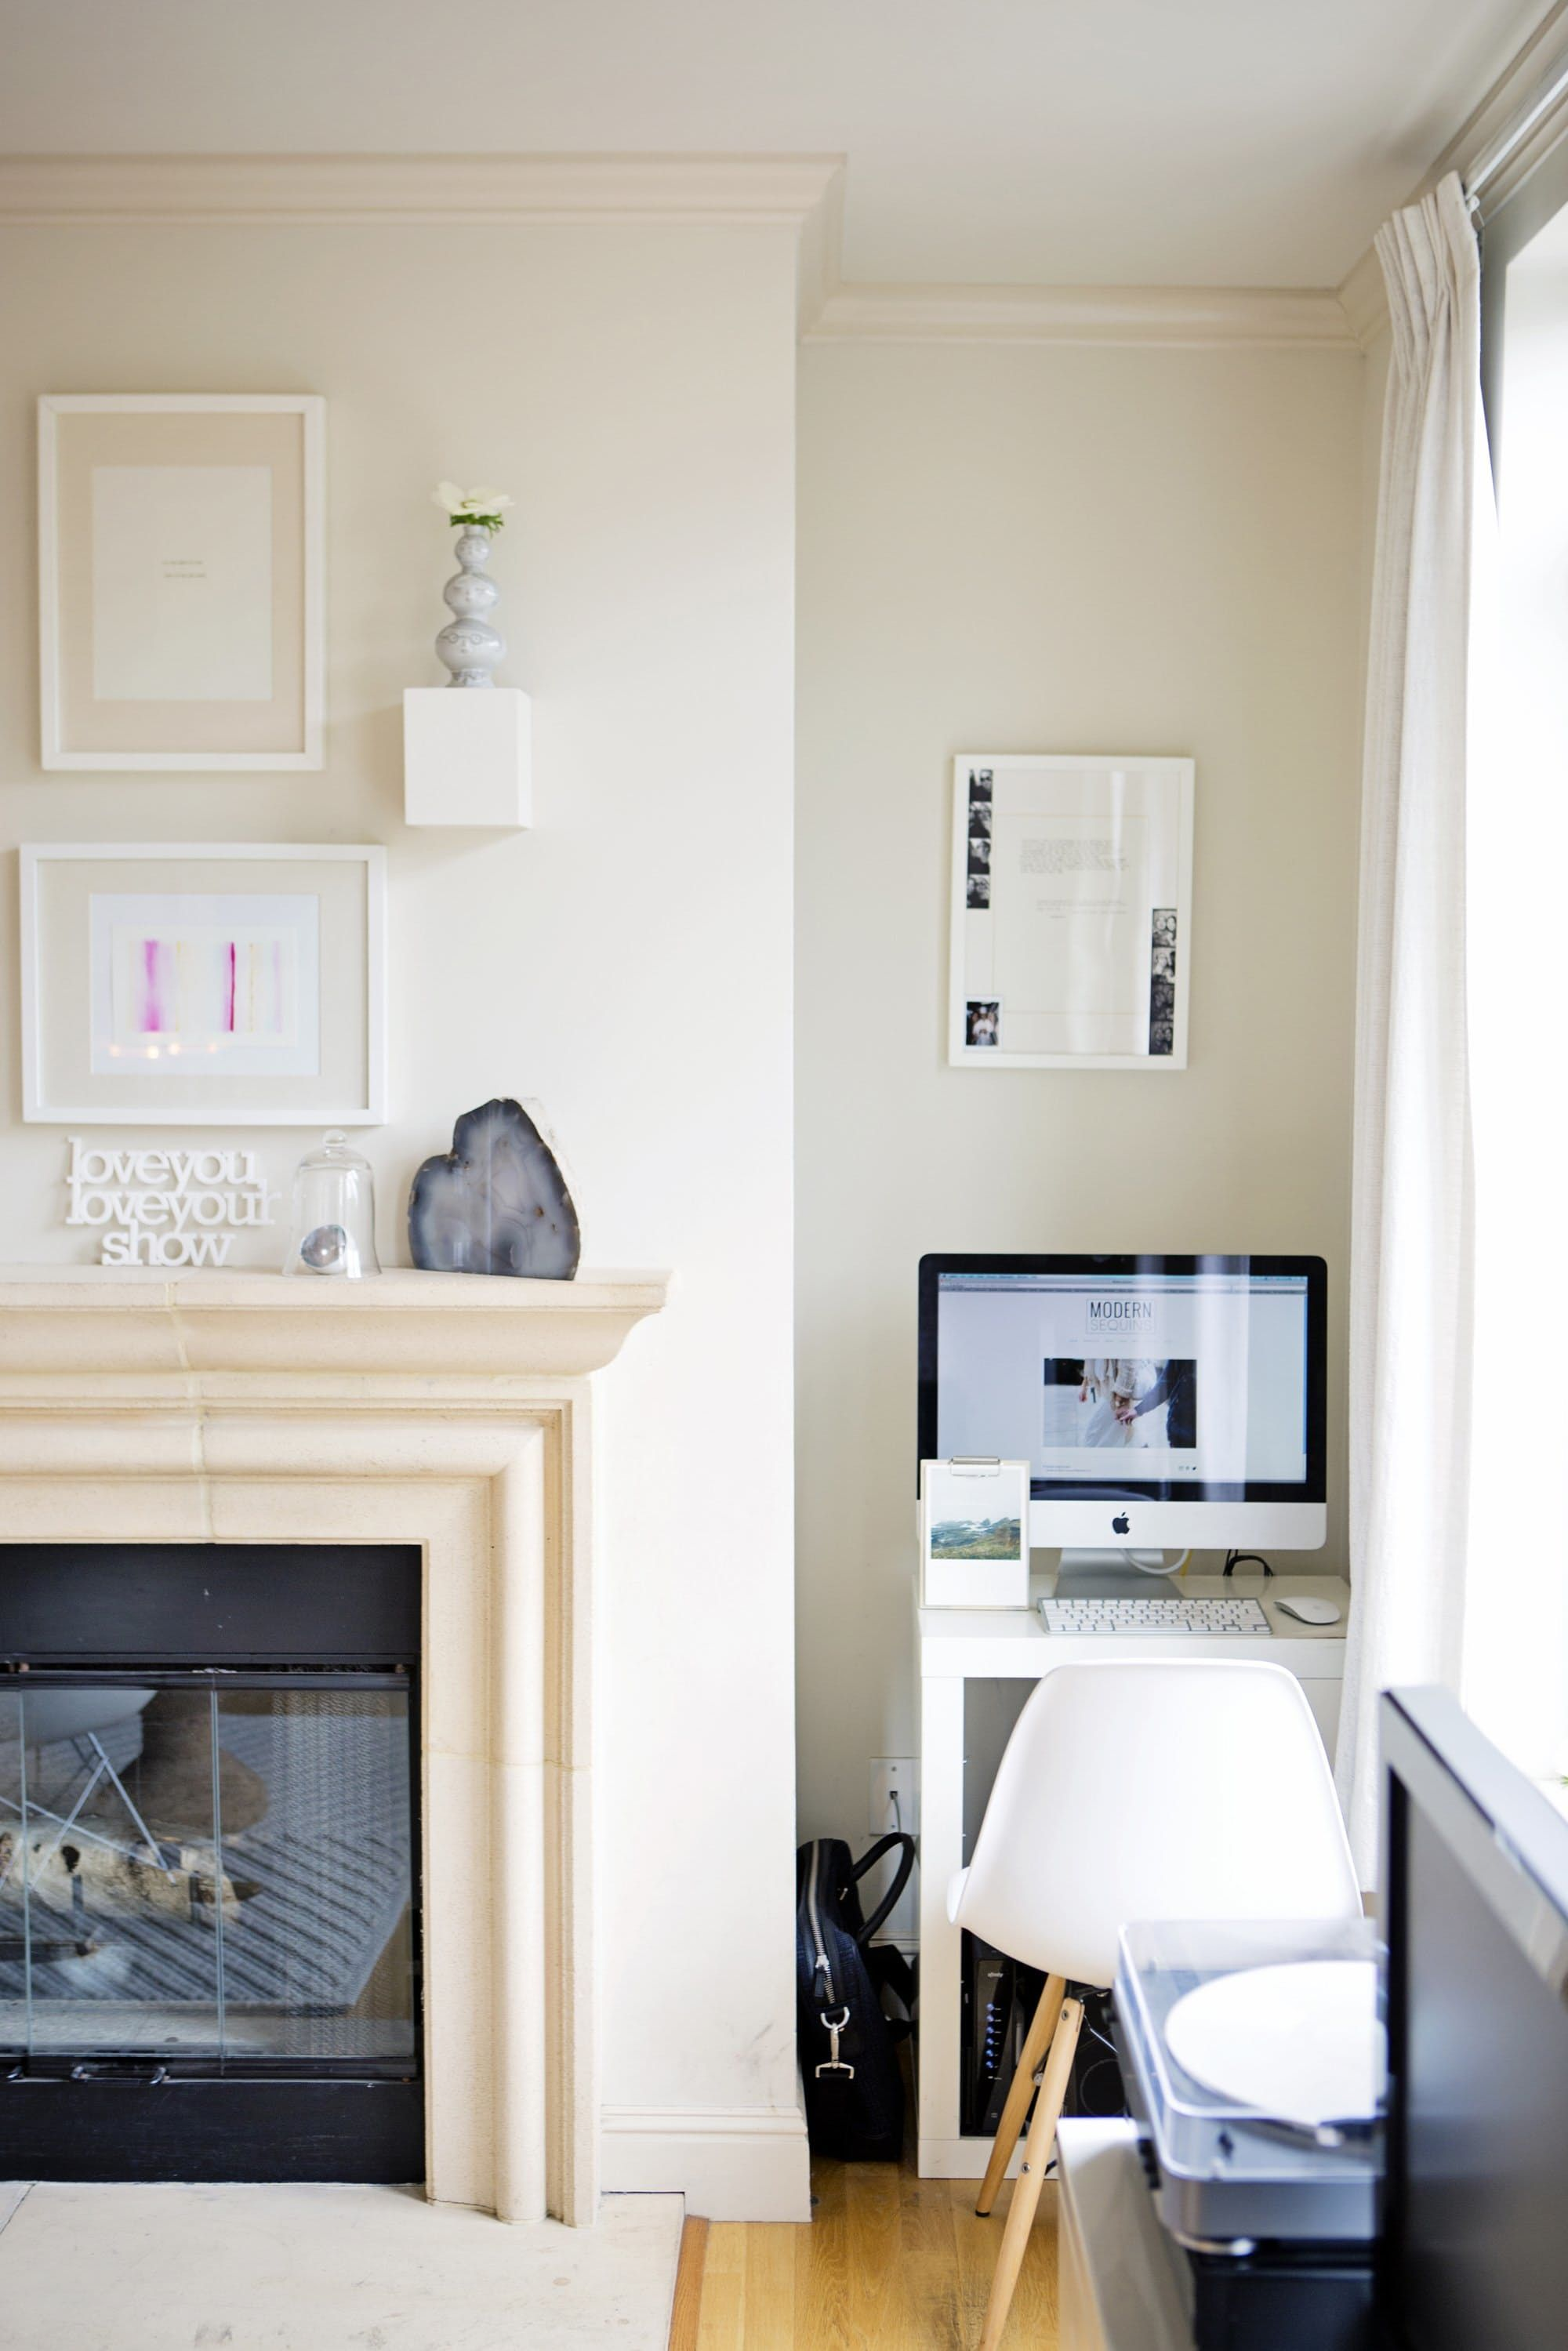 10 Perfect Living Room Home Office Nooks: Short on Space but Not ...